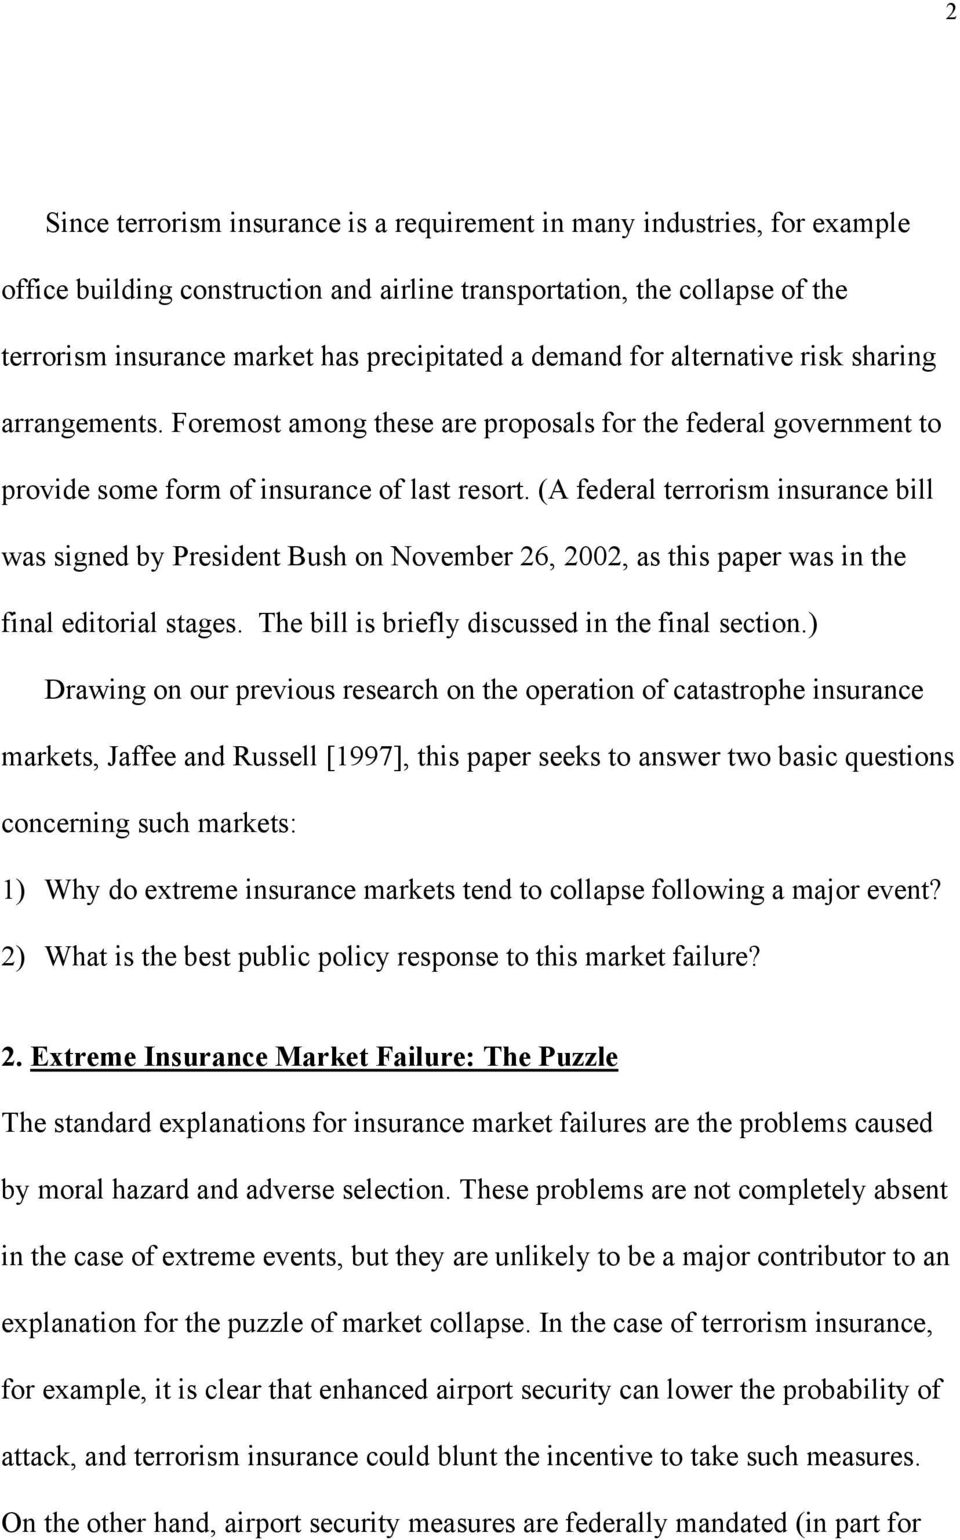 (A federal terrorism insurance bill was signed by President Bush on November 26, 2002, as this paper was in the final editorial stages. The bill is briefly discussed in the final section.